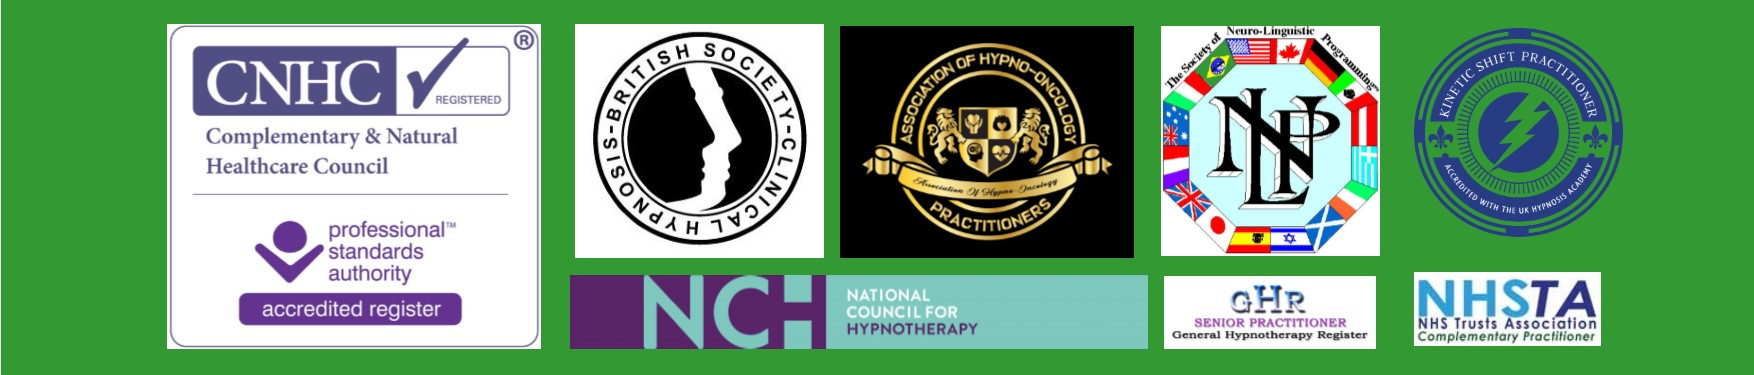 Release Hypnotherapy accreditations Complementary and Natural Healthcare Council (CNHC), British Society of Clinical Hypnosis (BSCH), Society of Neuro Linguistic Programming (SNLP), Kinetic Shift (KS), The Association of Hypno-Oncology Practitioners (AHOP), General Hypnotherapy Register (GHR), National Council for Hypnotherapy  (NCH), National Health Service Trusts Association (NHSTA) logos